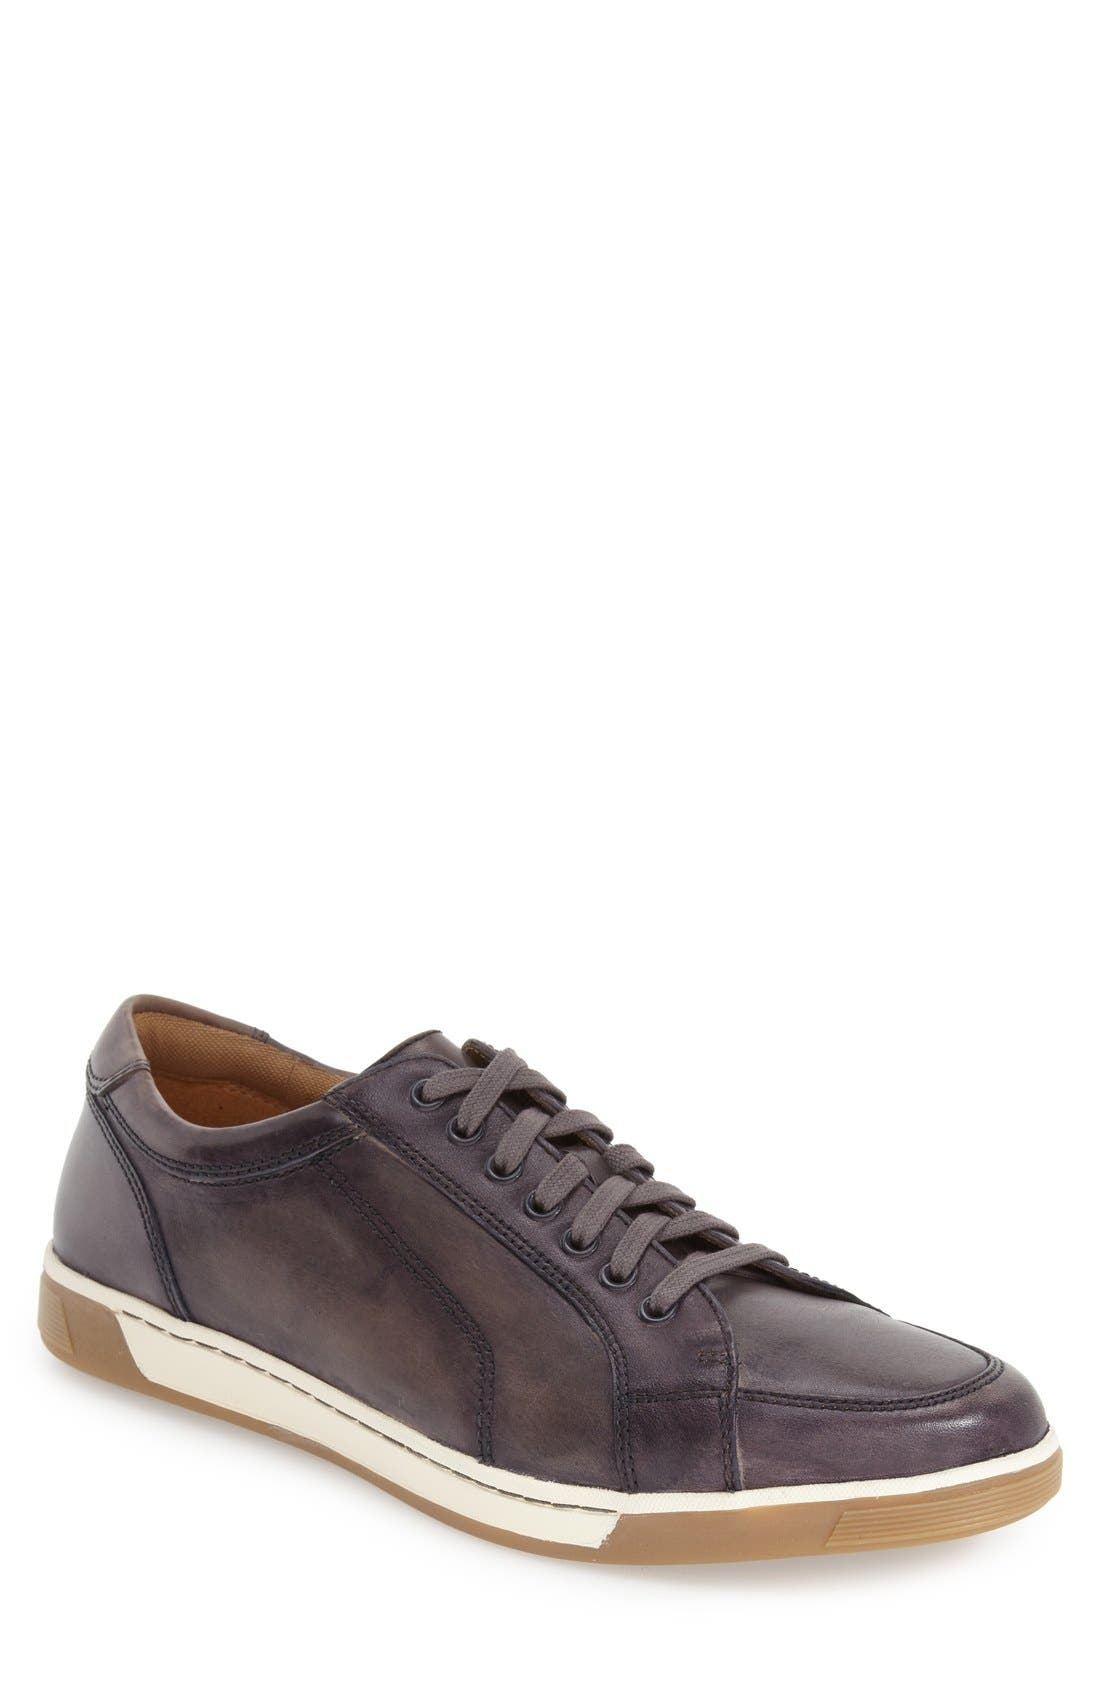 Alternate Image 1 Selected - Cole Haan 'Vartan Sport Oxford' Sneaker (Men)